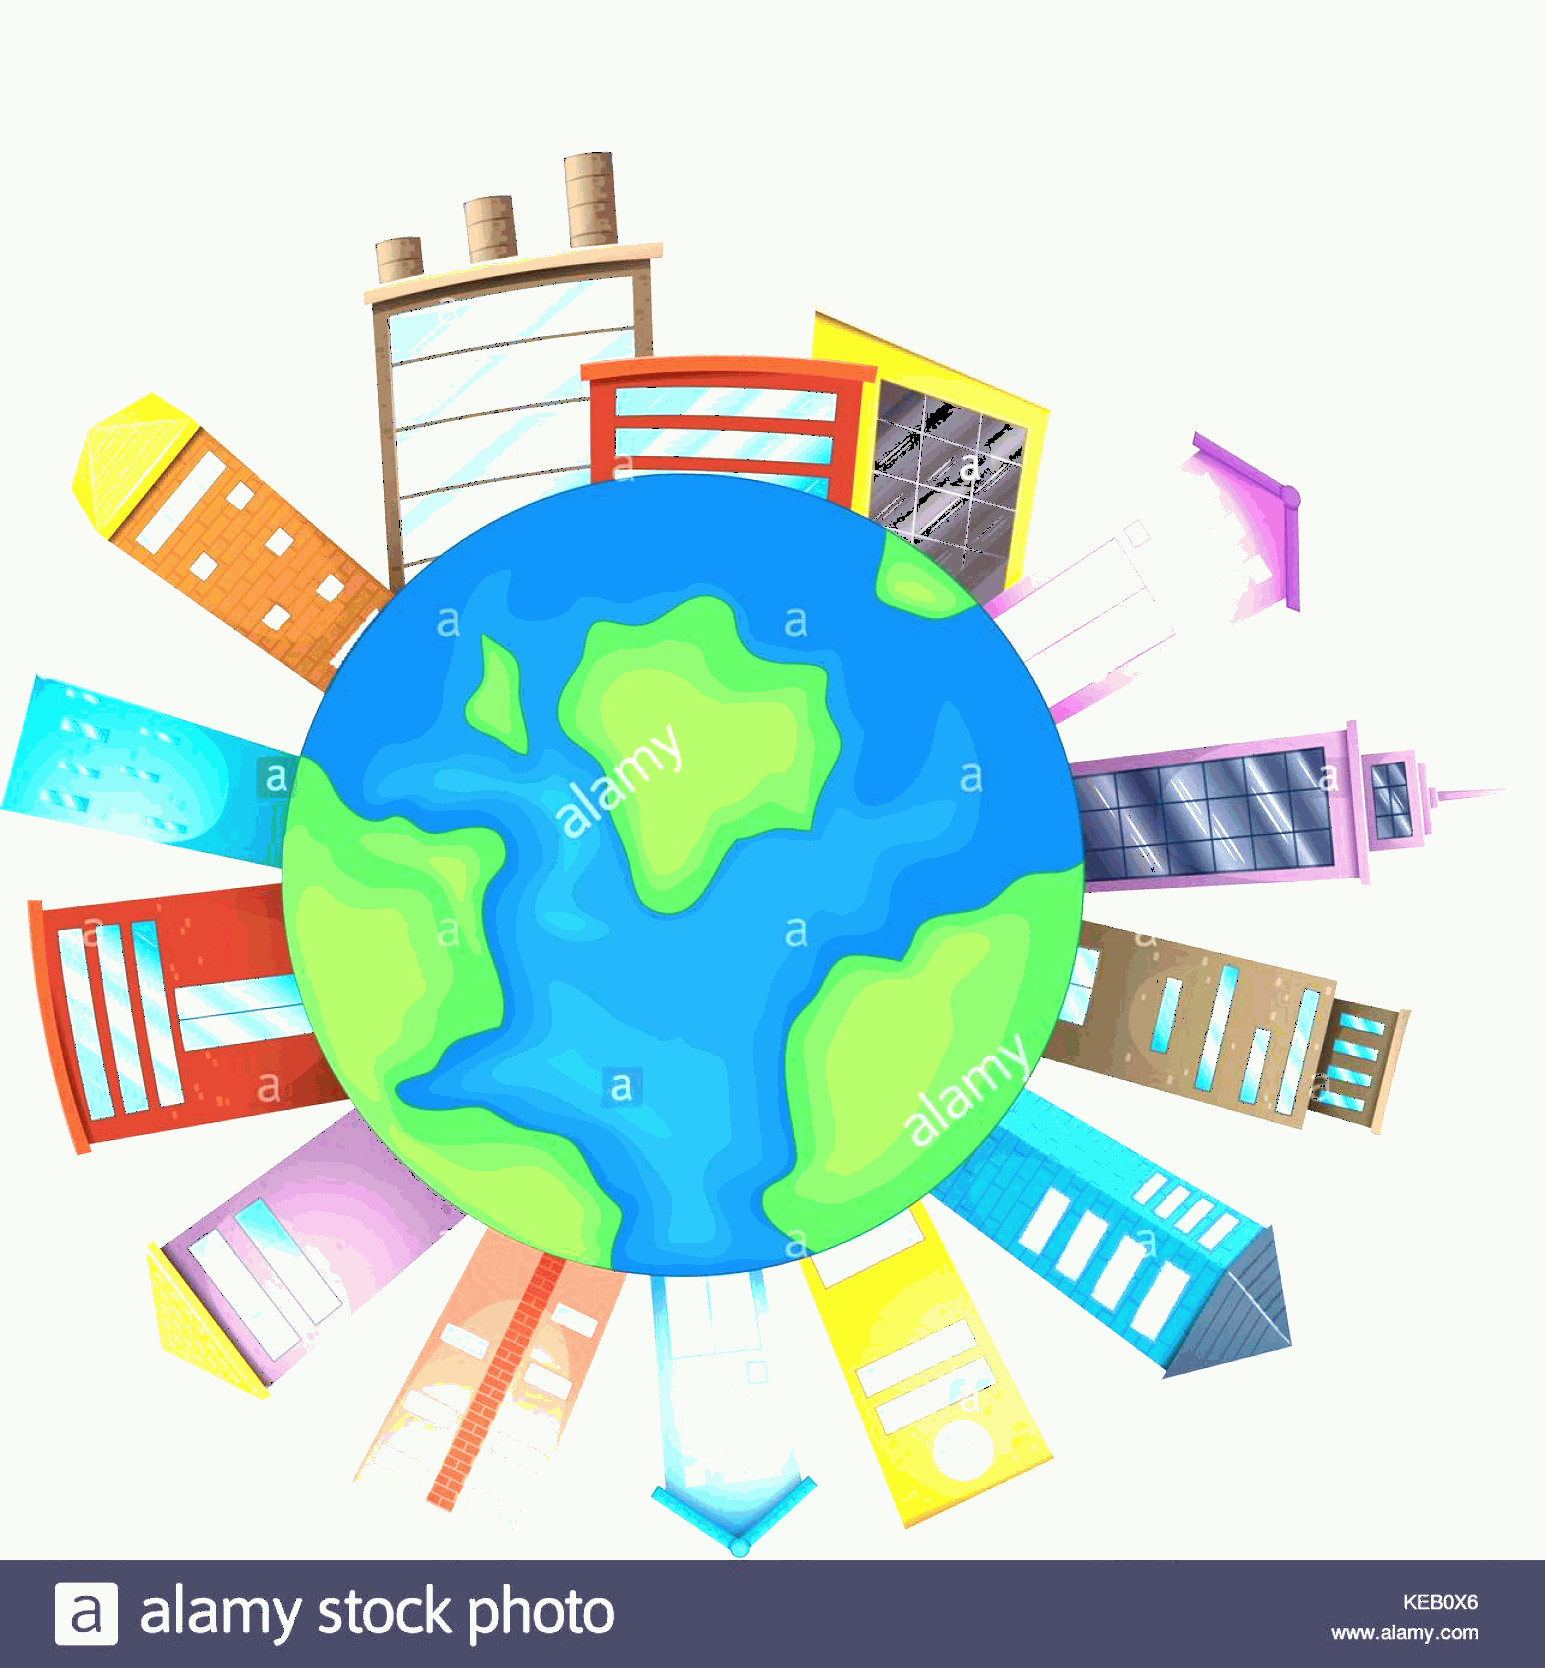 Earth With Buildings Vector: Stock Image Illustration Of Many Buildings Around The Earth